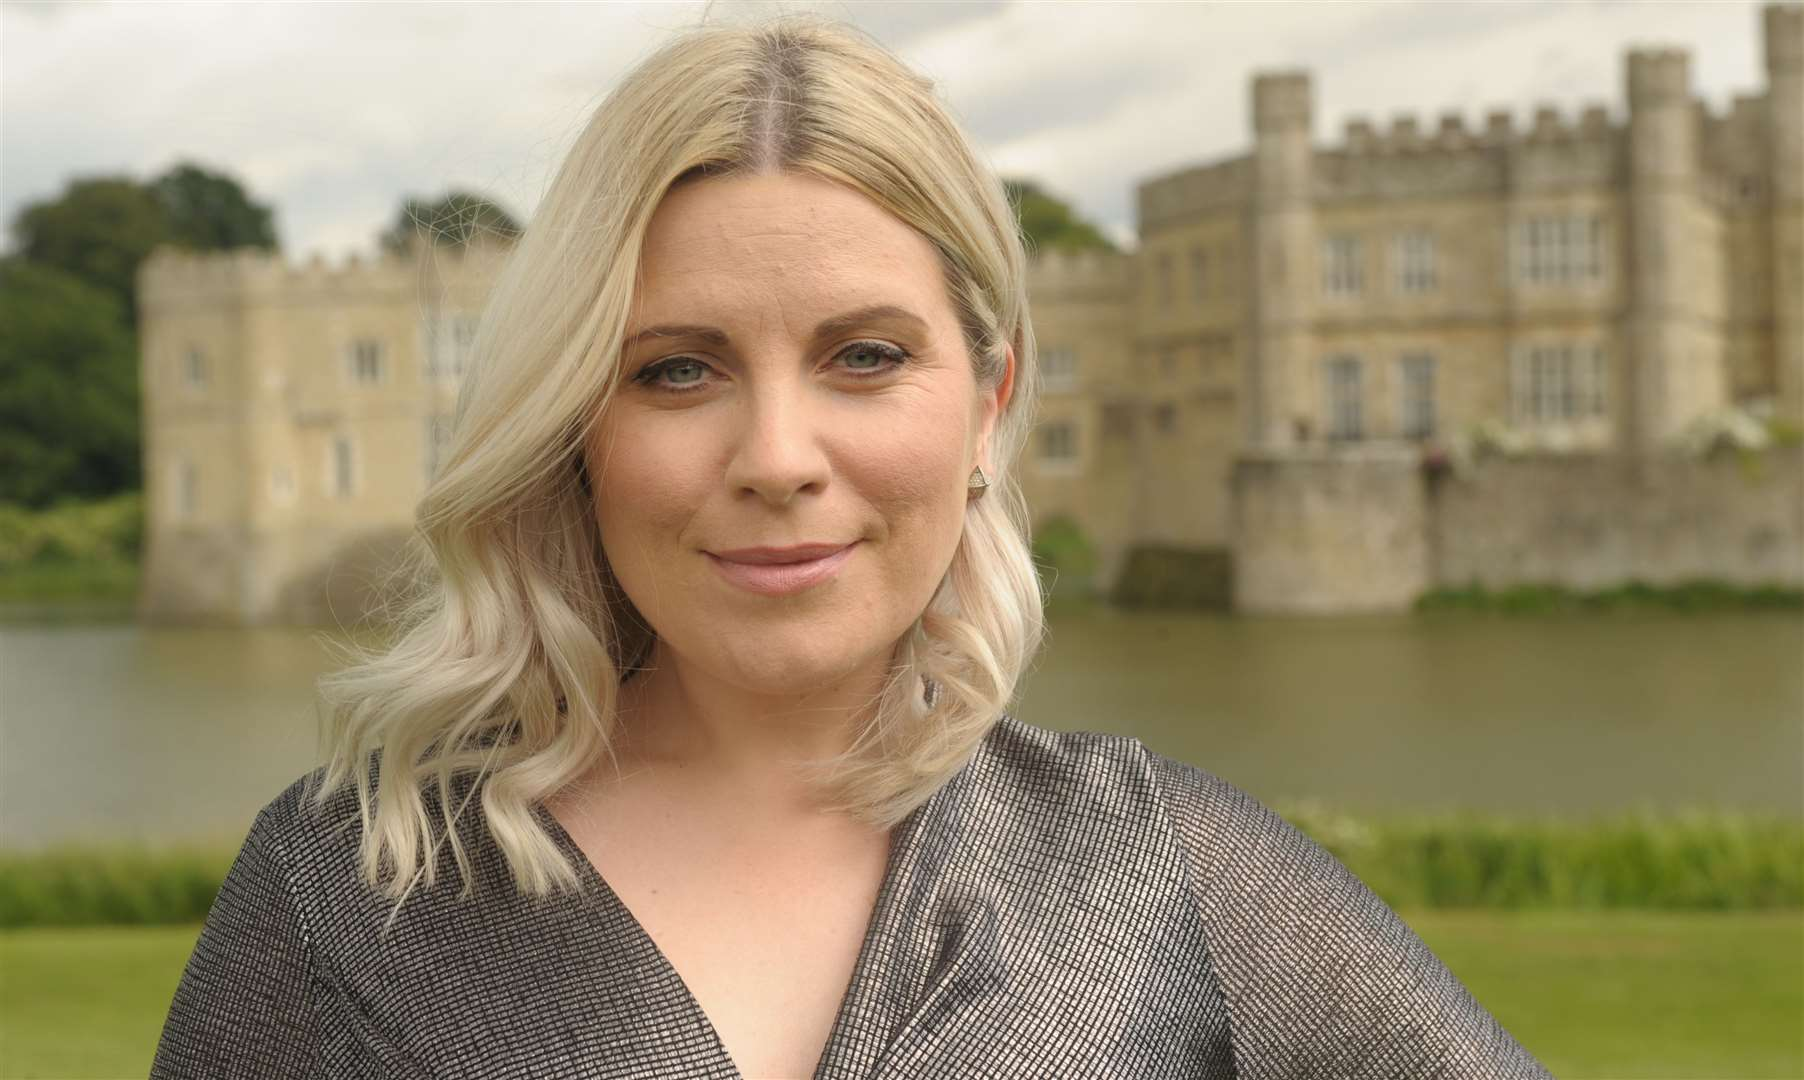 Louise Dearman is returning to Leeds Castle for the Classical Concert Picture: Steve Crispe